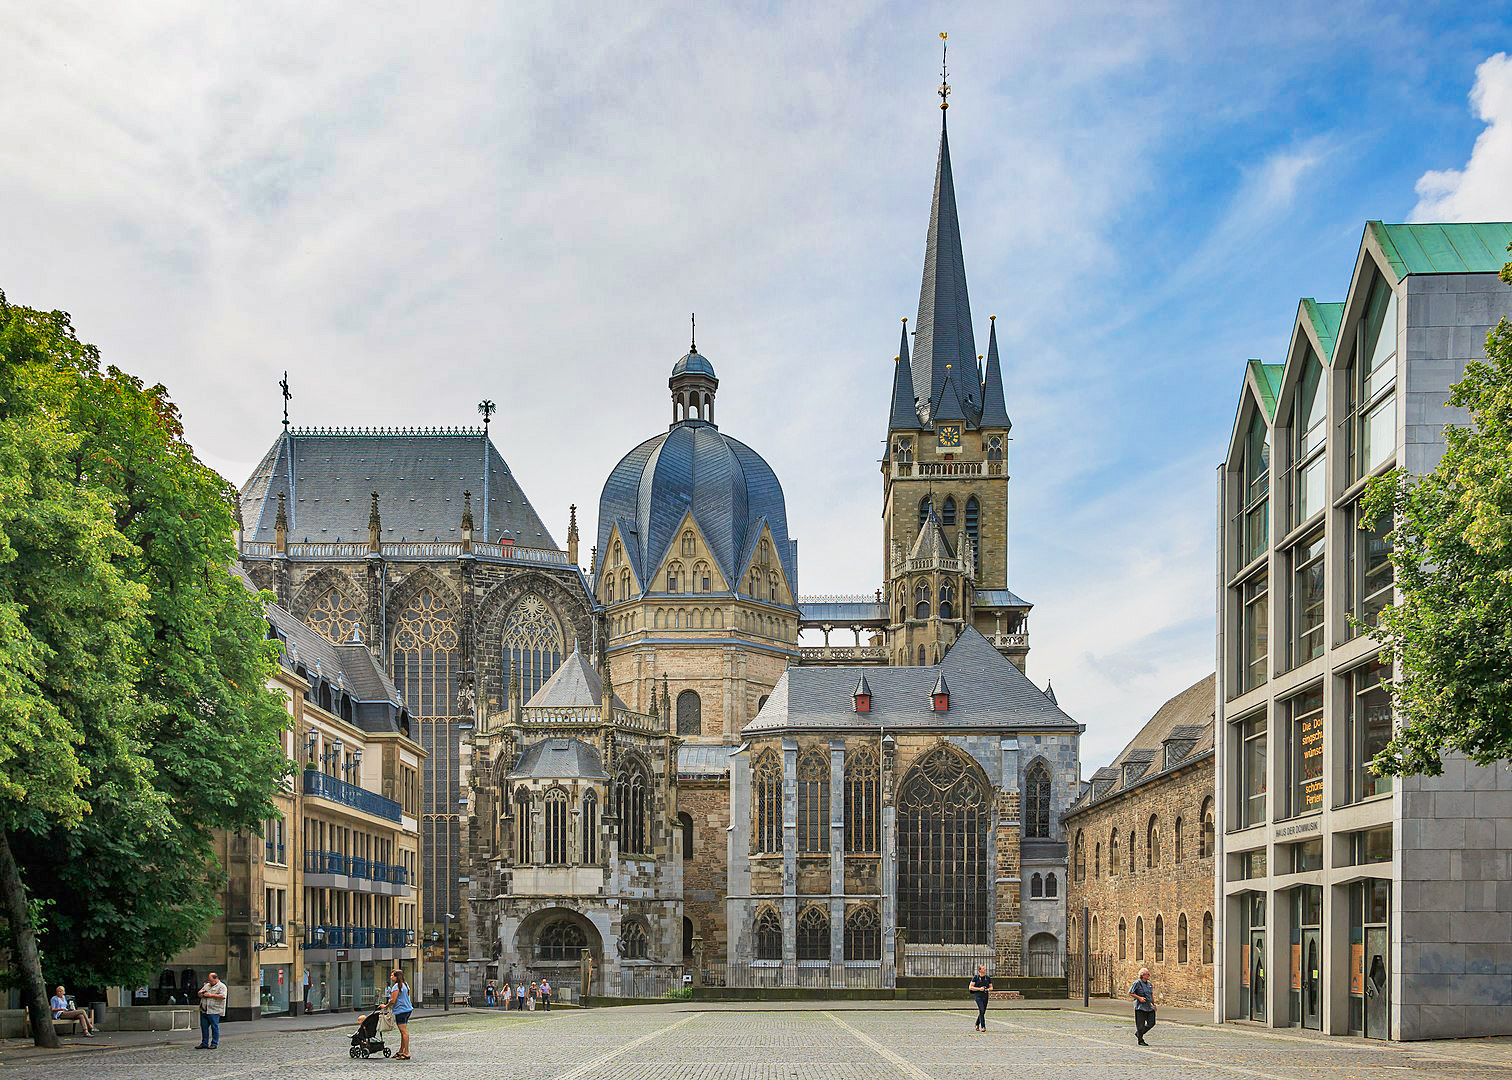 Aachen Imperial-Cathedral © CEphoto - licence [CC BY-SA 3.0] from Wikimedia Commons